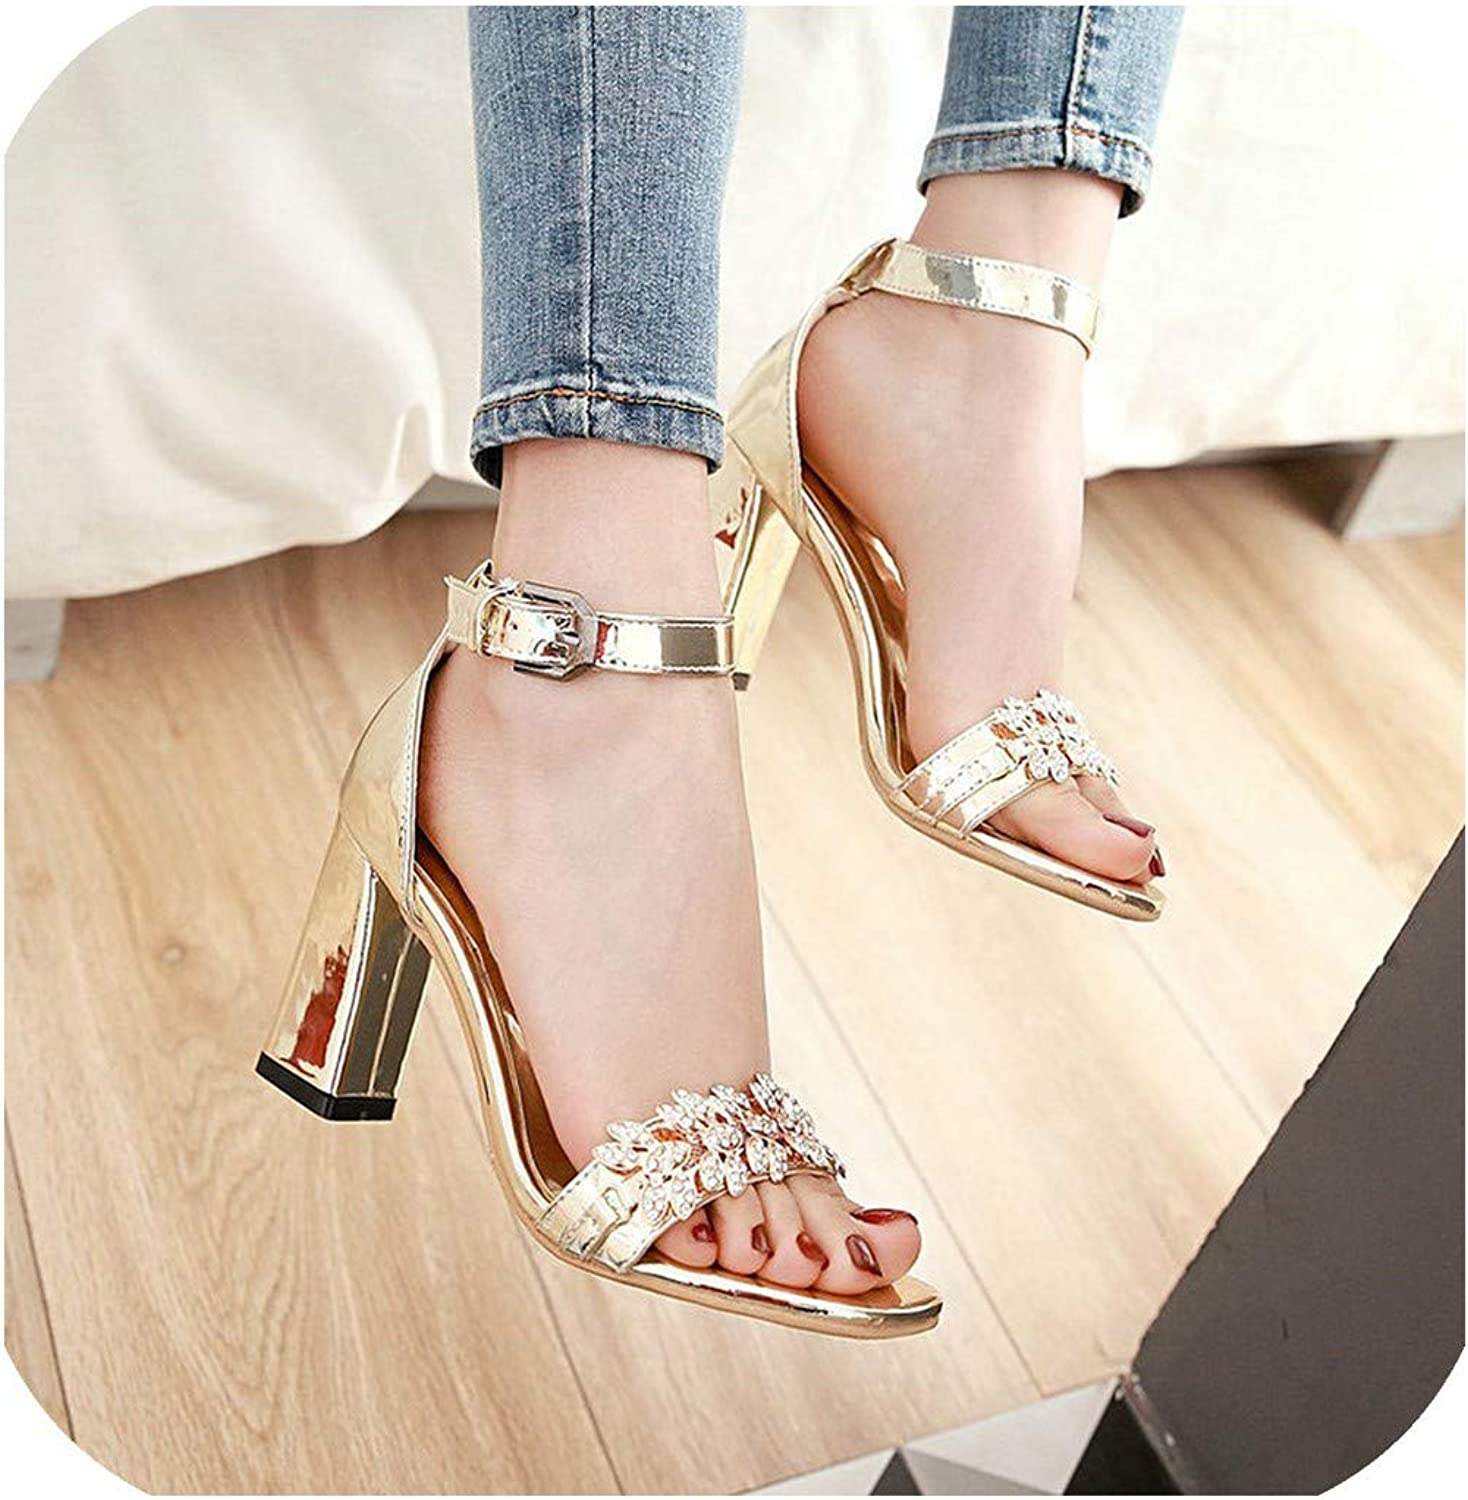 Summer Ankle Strap Thick High Heel with Buckle Sandals Crystal Open Toe Dress Women shoes